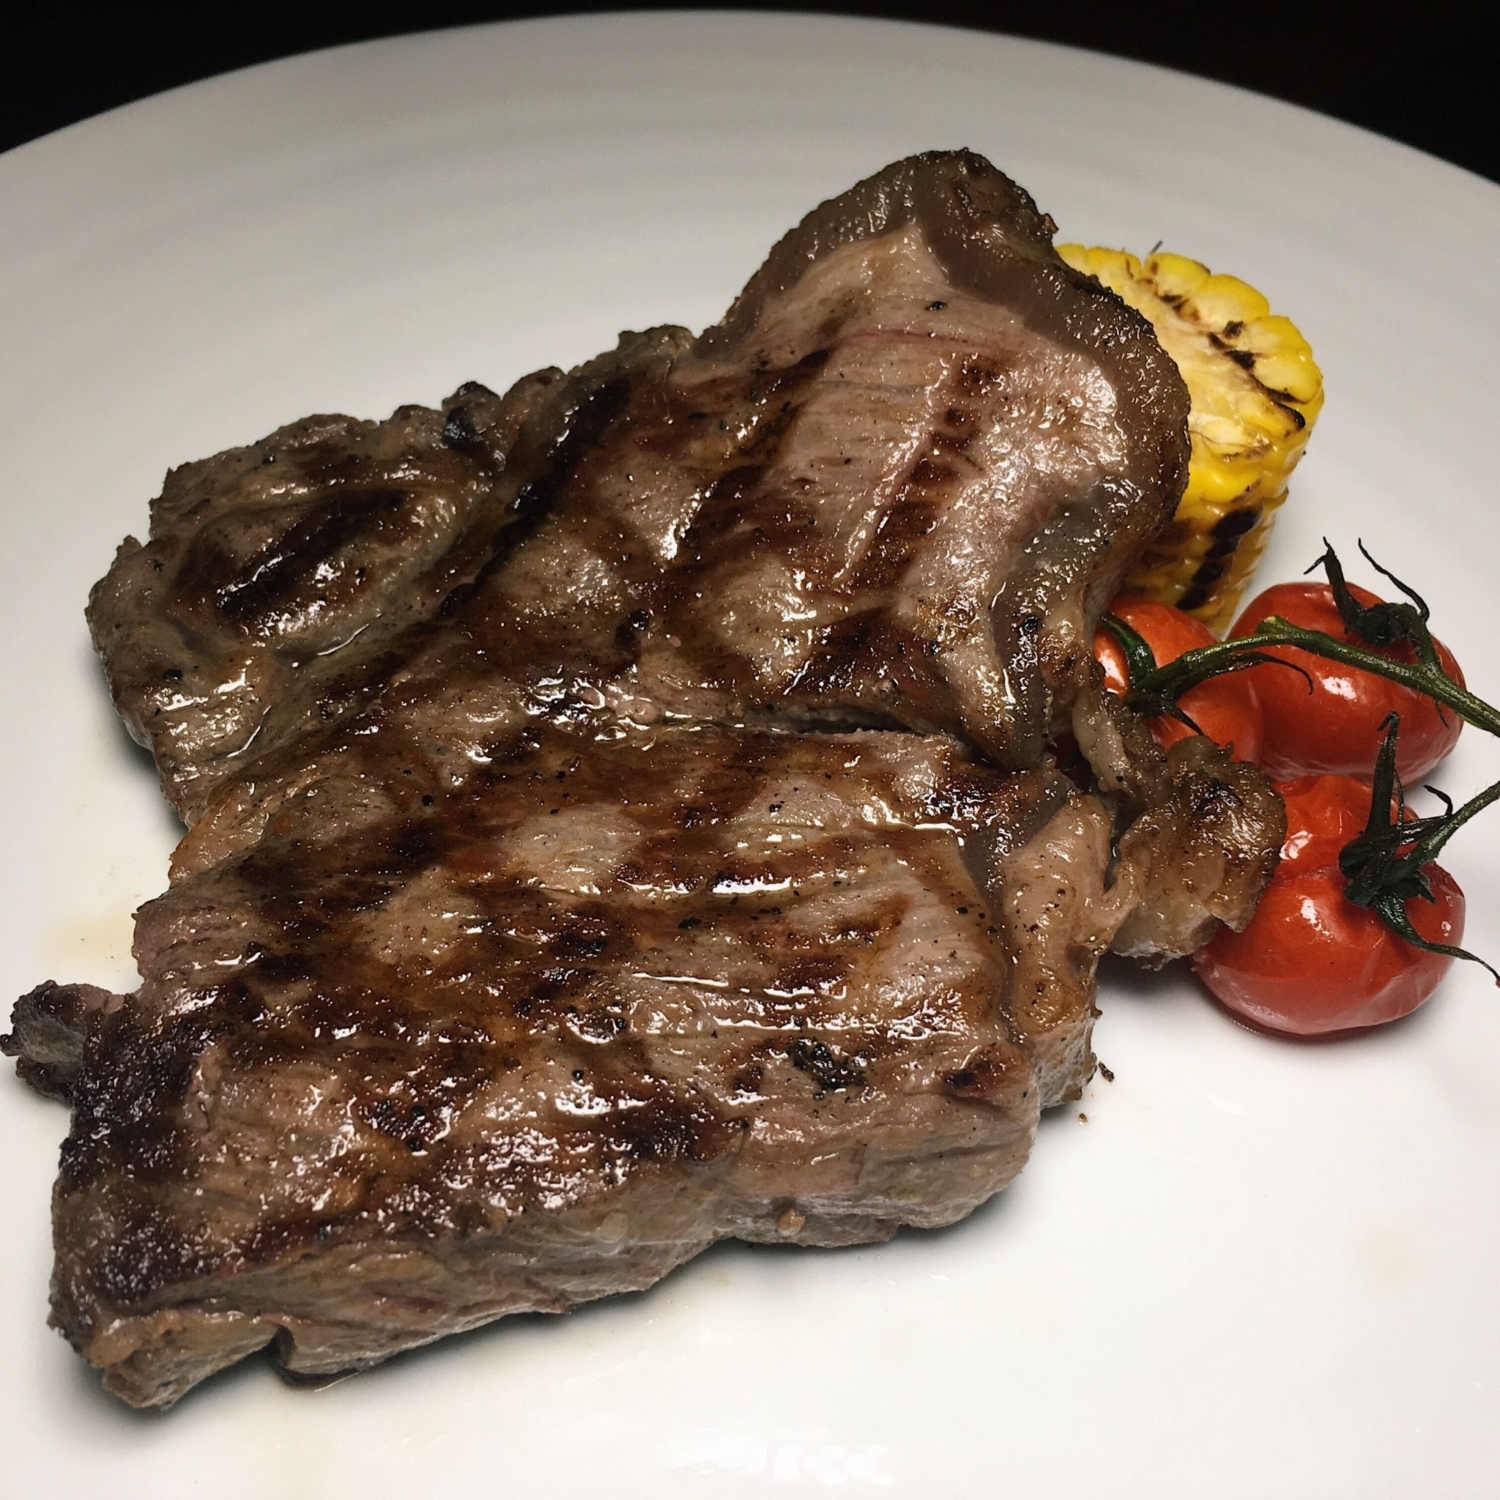 Snow-aged Full Blood Wagyu A4 - Origin Grill & Bar